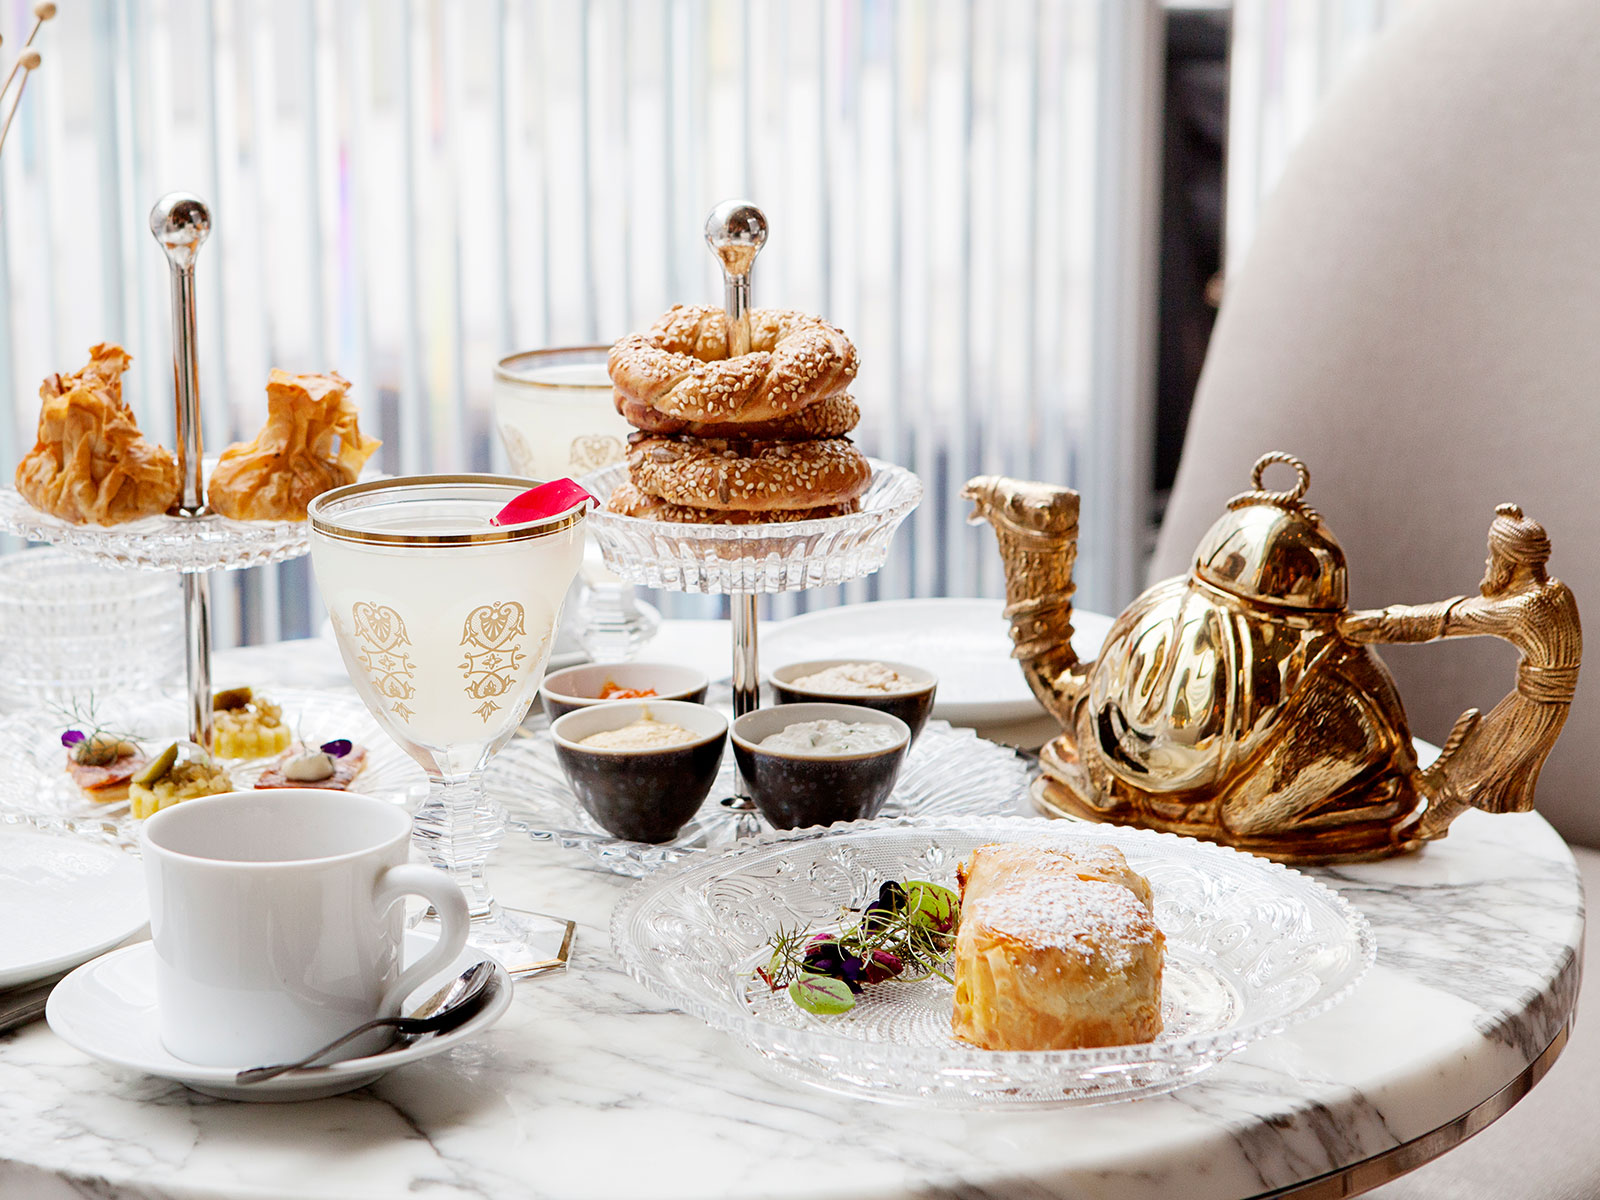 The Art of High Tea Has Evolved, and There's Something for Everyone